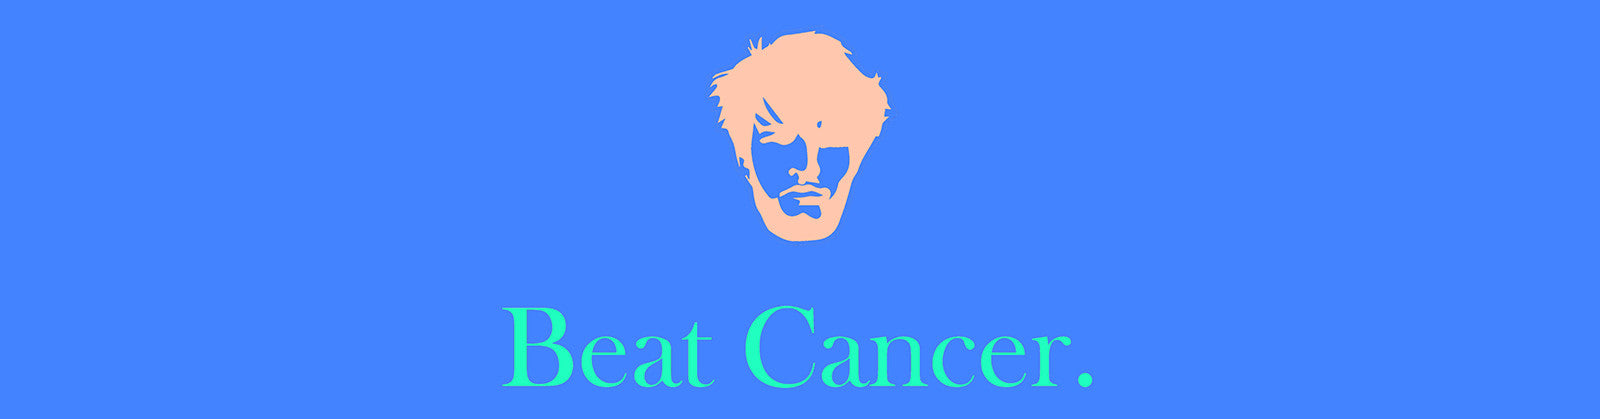 Beat Cancer.